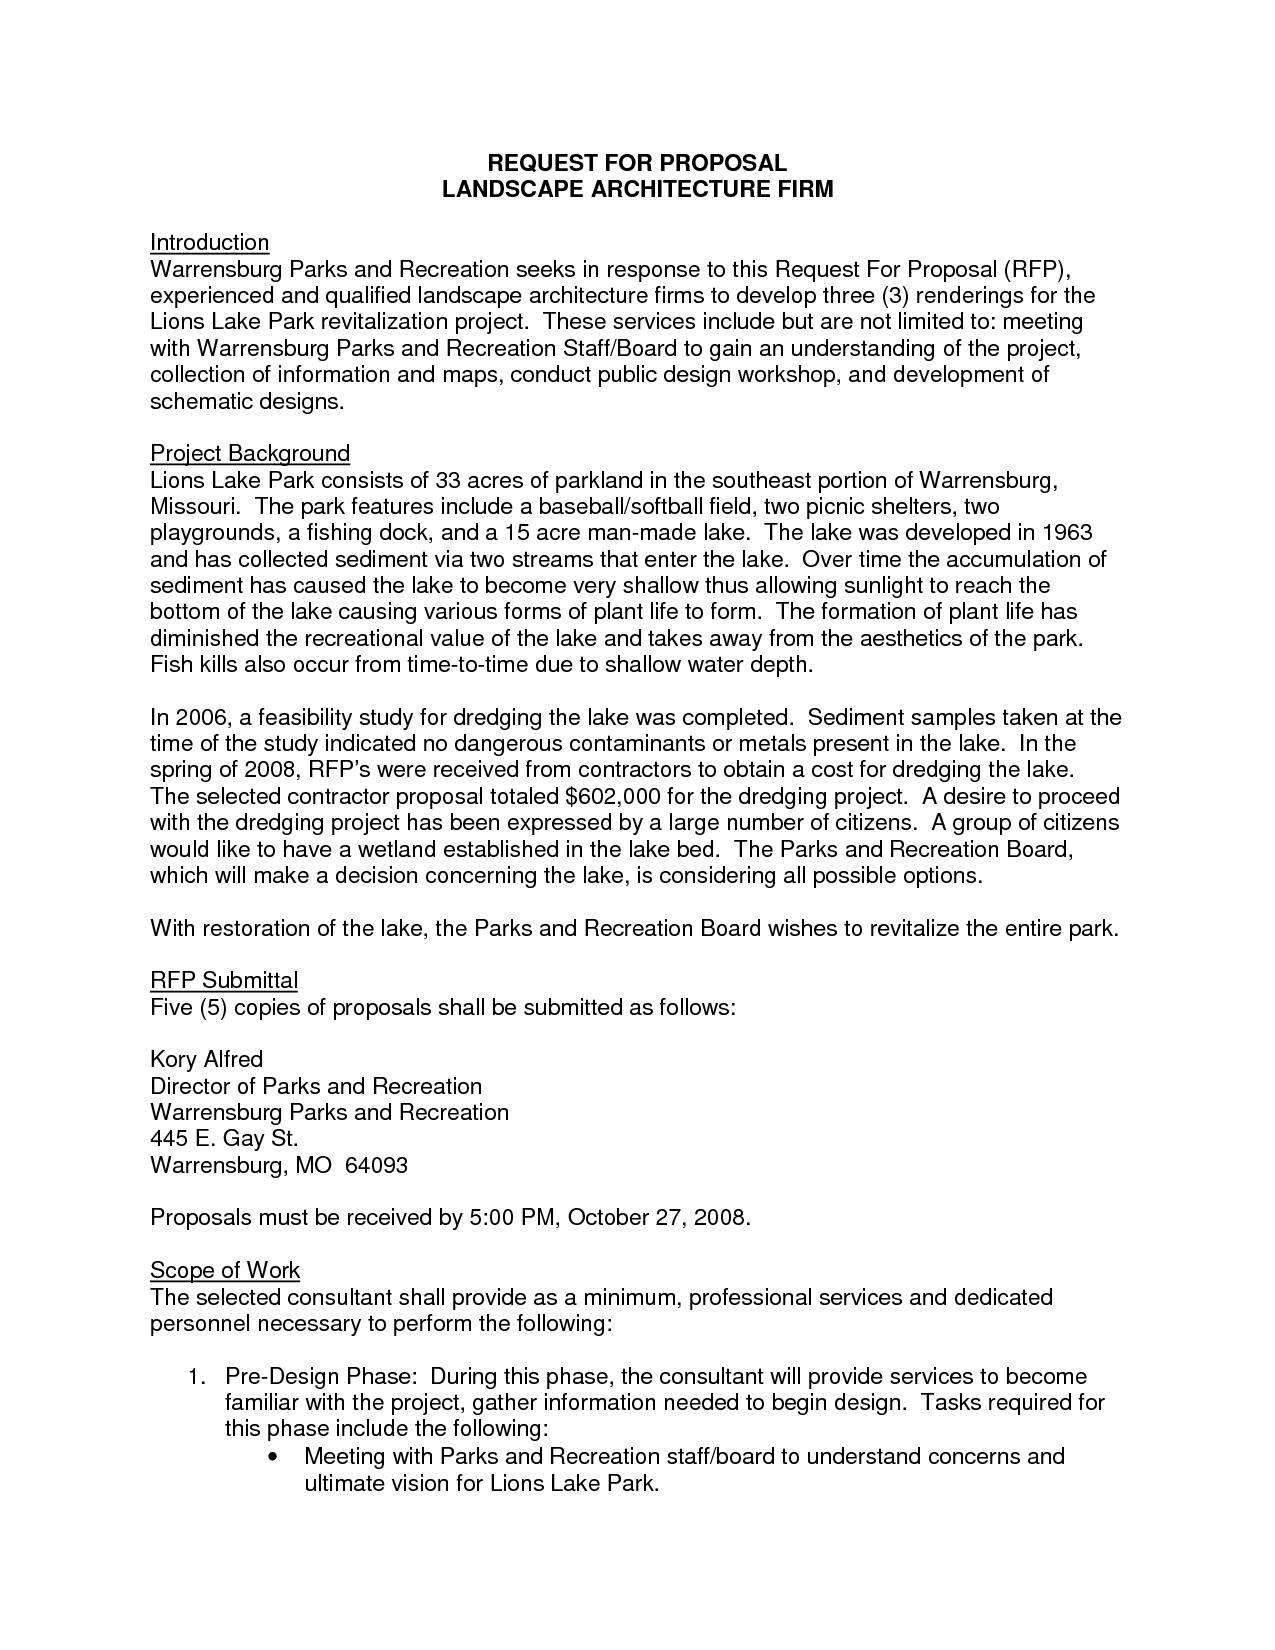 Sample Engineering Research Statement | Professional resumes ...